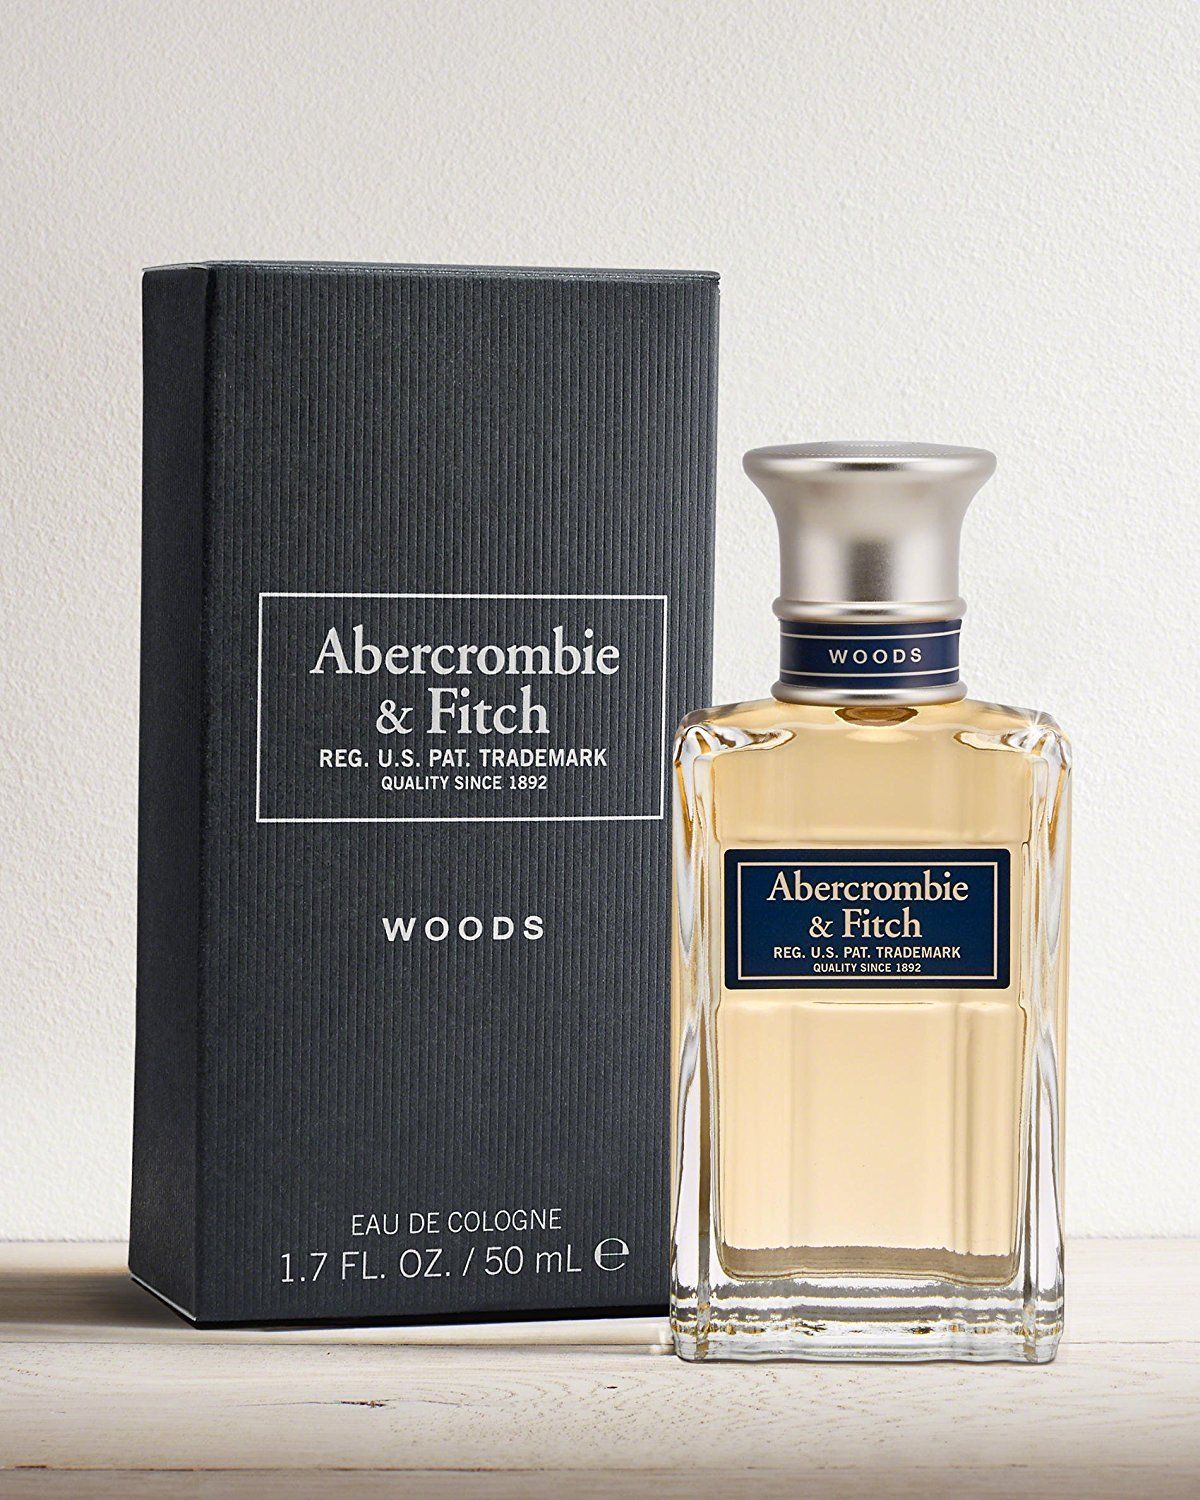 Primary image for Woods by Abercrombie & Fitch 1.7 oz 50 ml EAU DE COLOGNE SPRAY Men's A&F New EDC